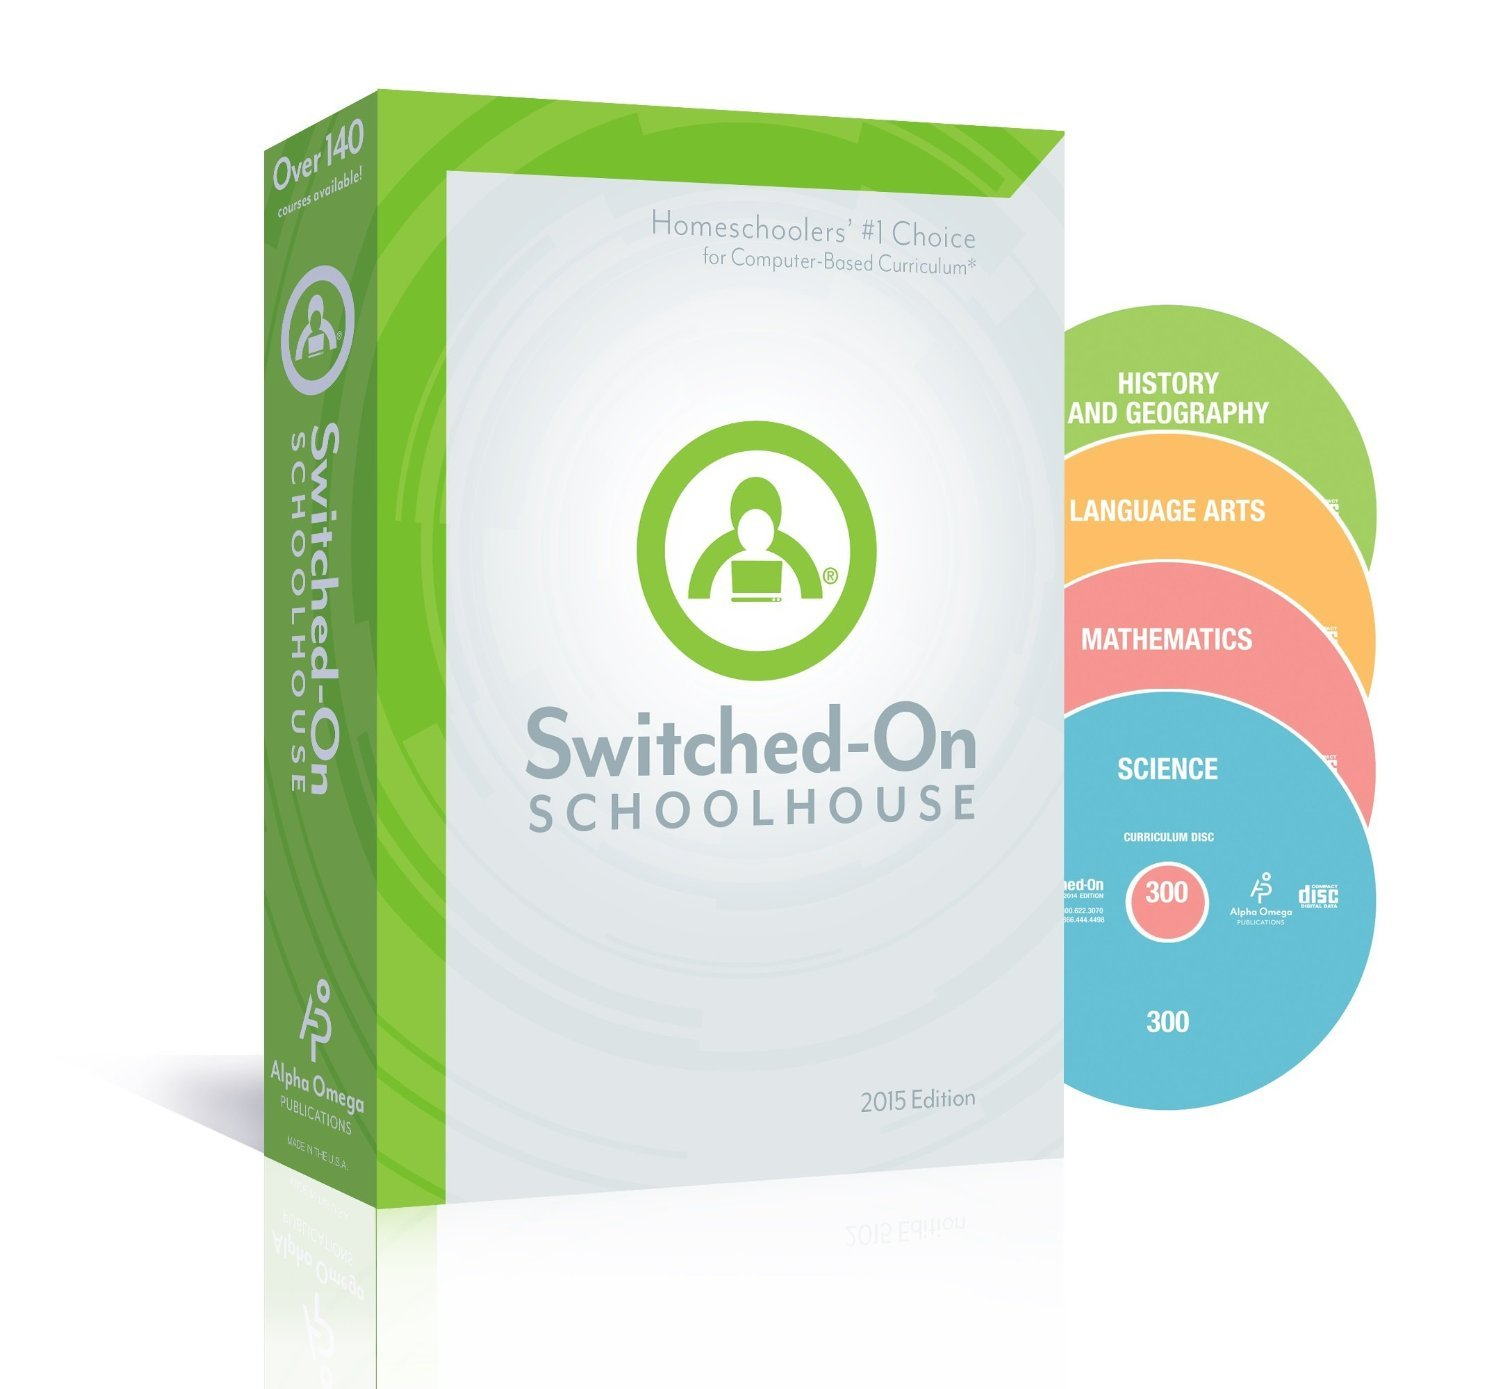 Switched on Schoolhouse, Grade 3, AOP 4-Subject Set - Math, Language, Science & History / Geography (Alpha Omega HomeSchooling), SOS 3RD Grade CD-ROM Curriculum, Core Subject Set